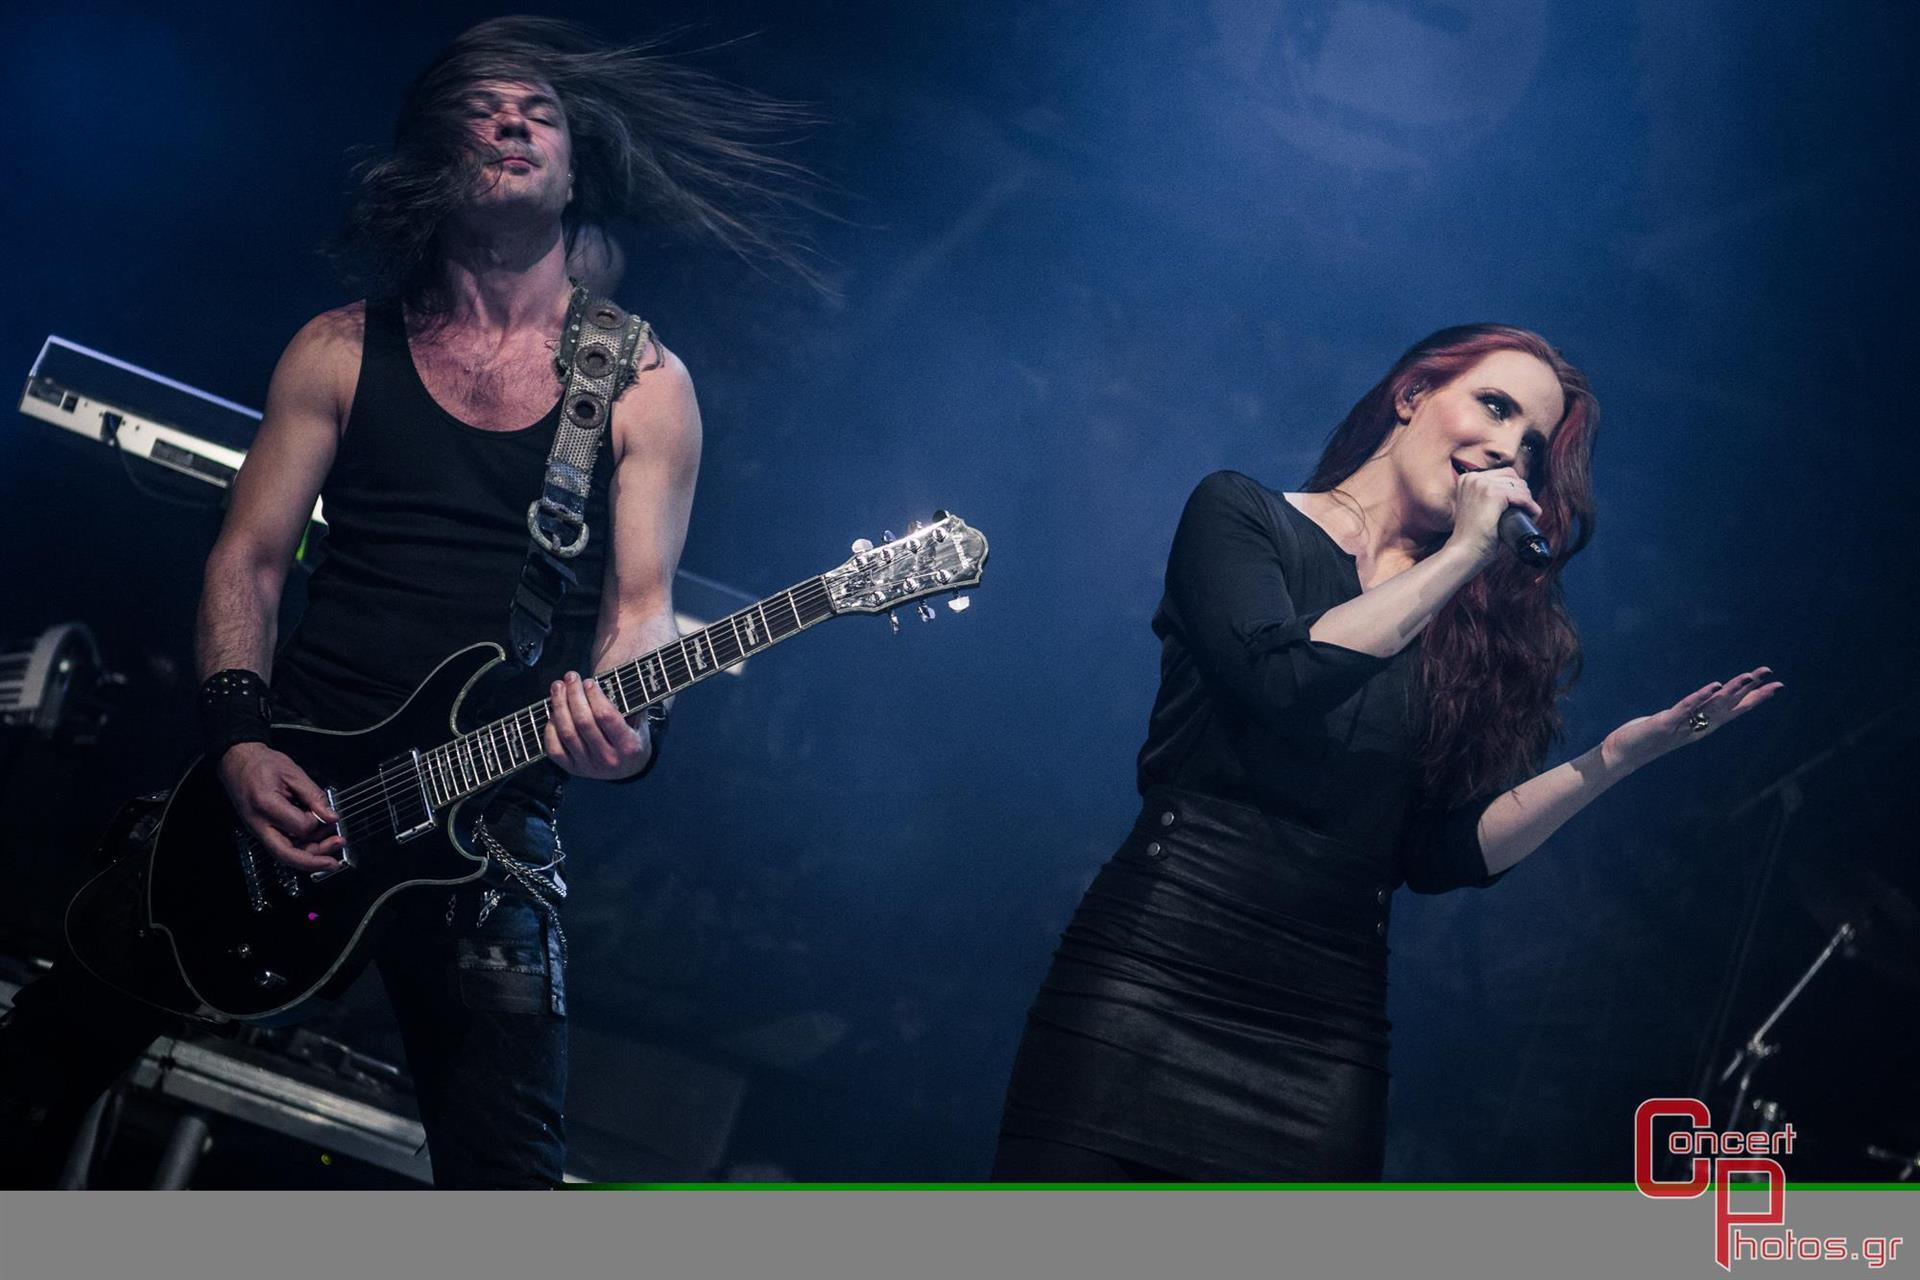 EPICA Jaded Star Fuzz Club-EPICA Jaded Star Fuzz Club photographer:  - Epica_27